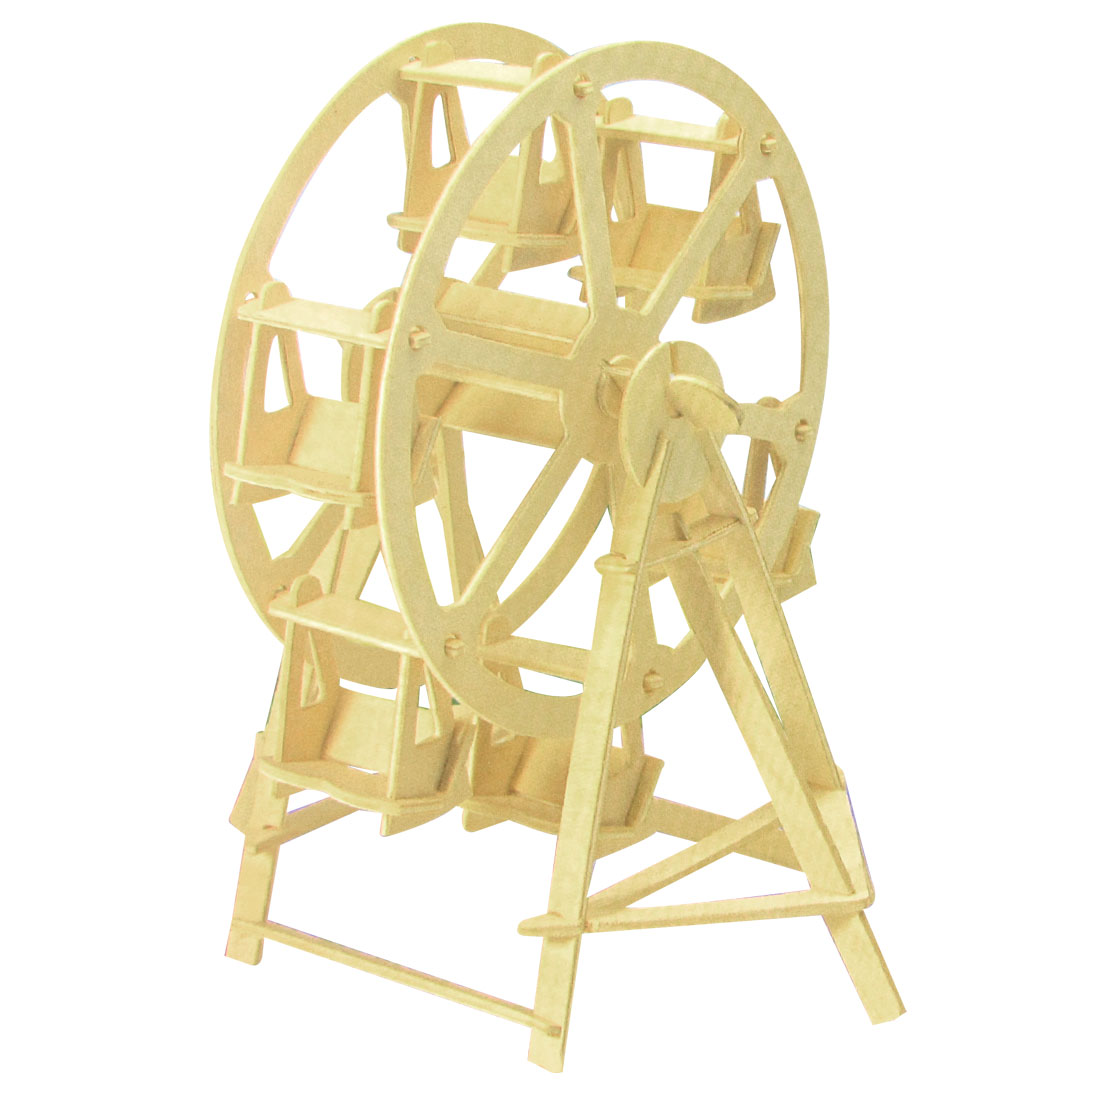 Ferris Wheel Design Wood Model Puzzle Toy Woodcraft Construction Kit